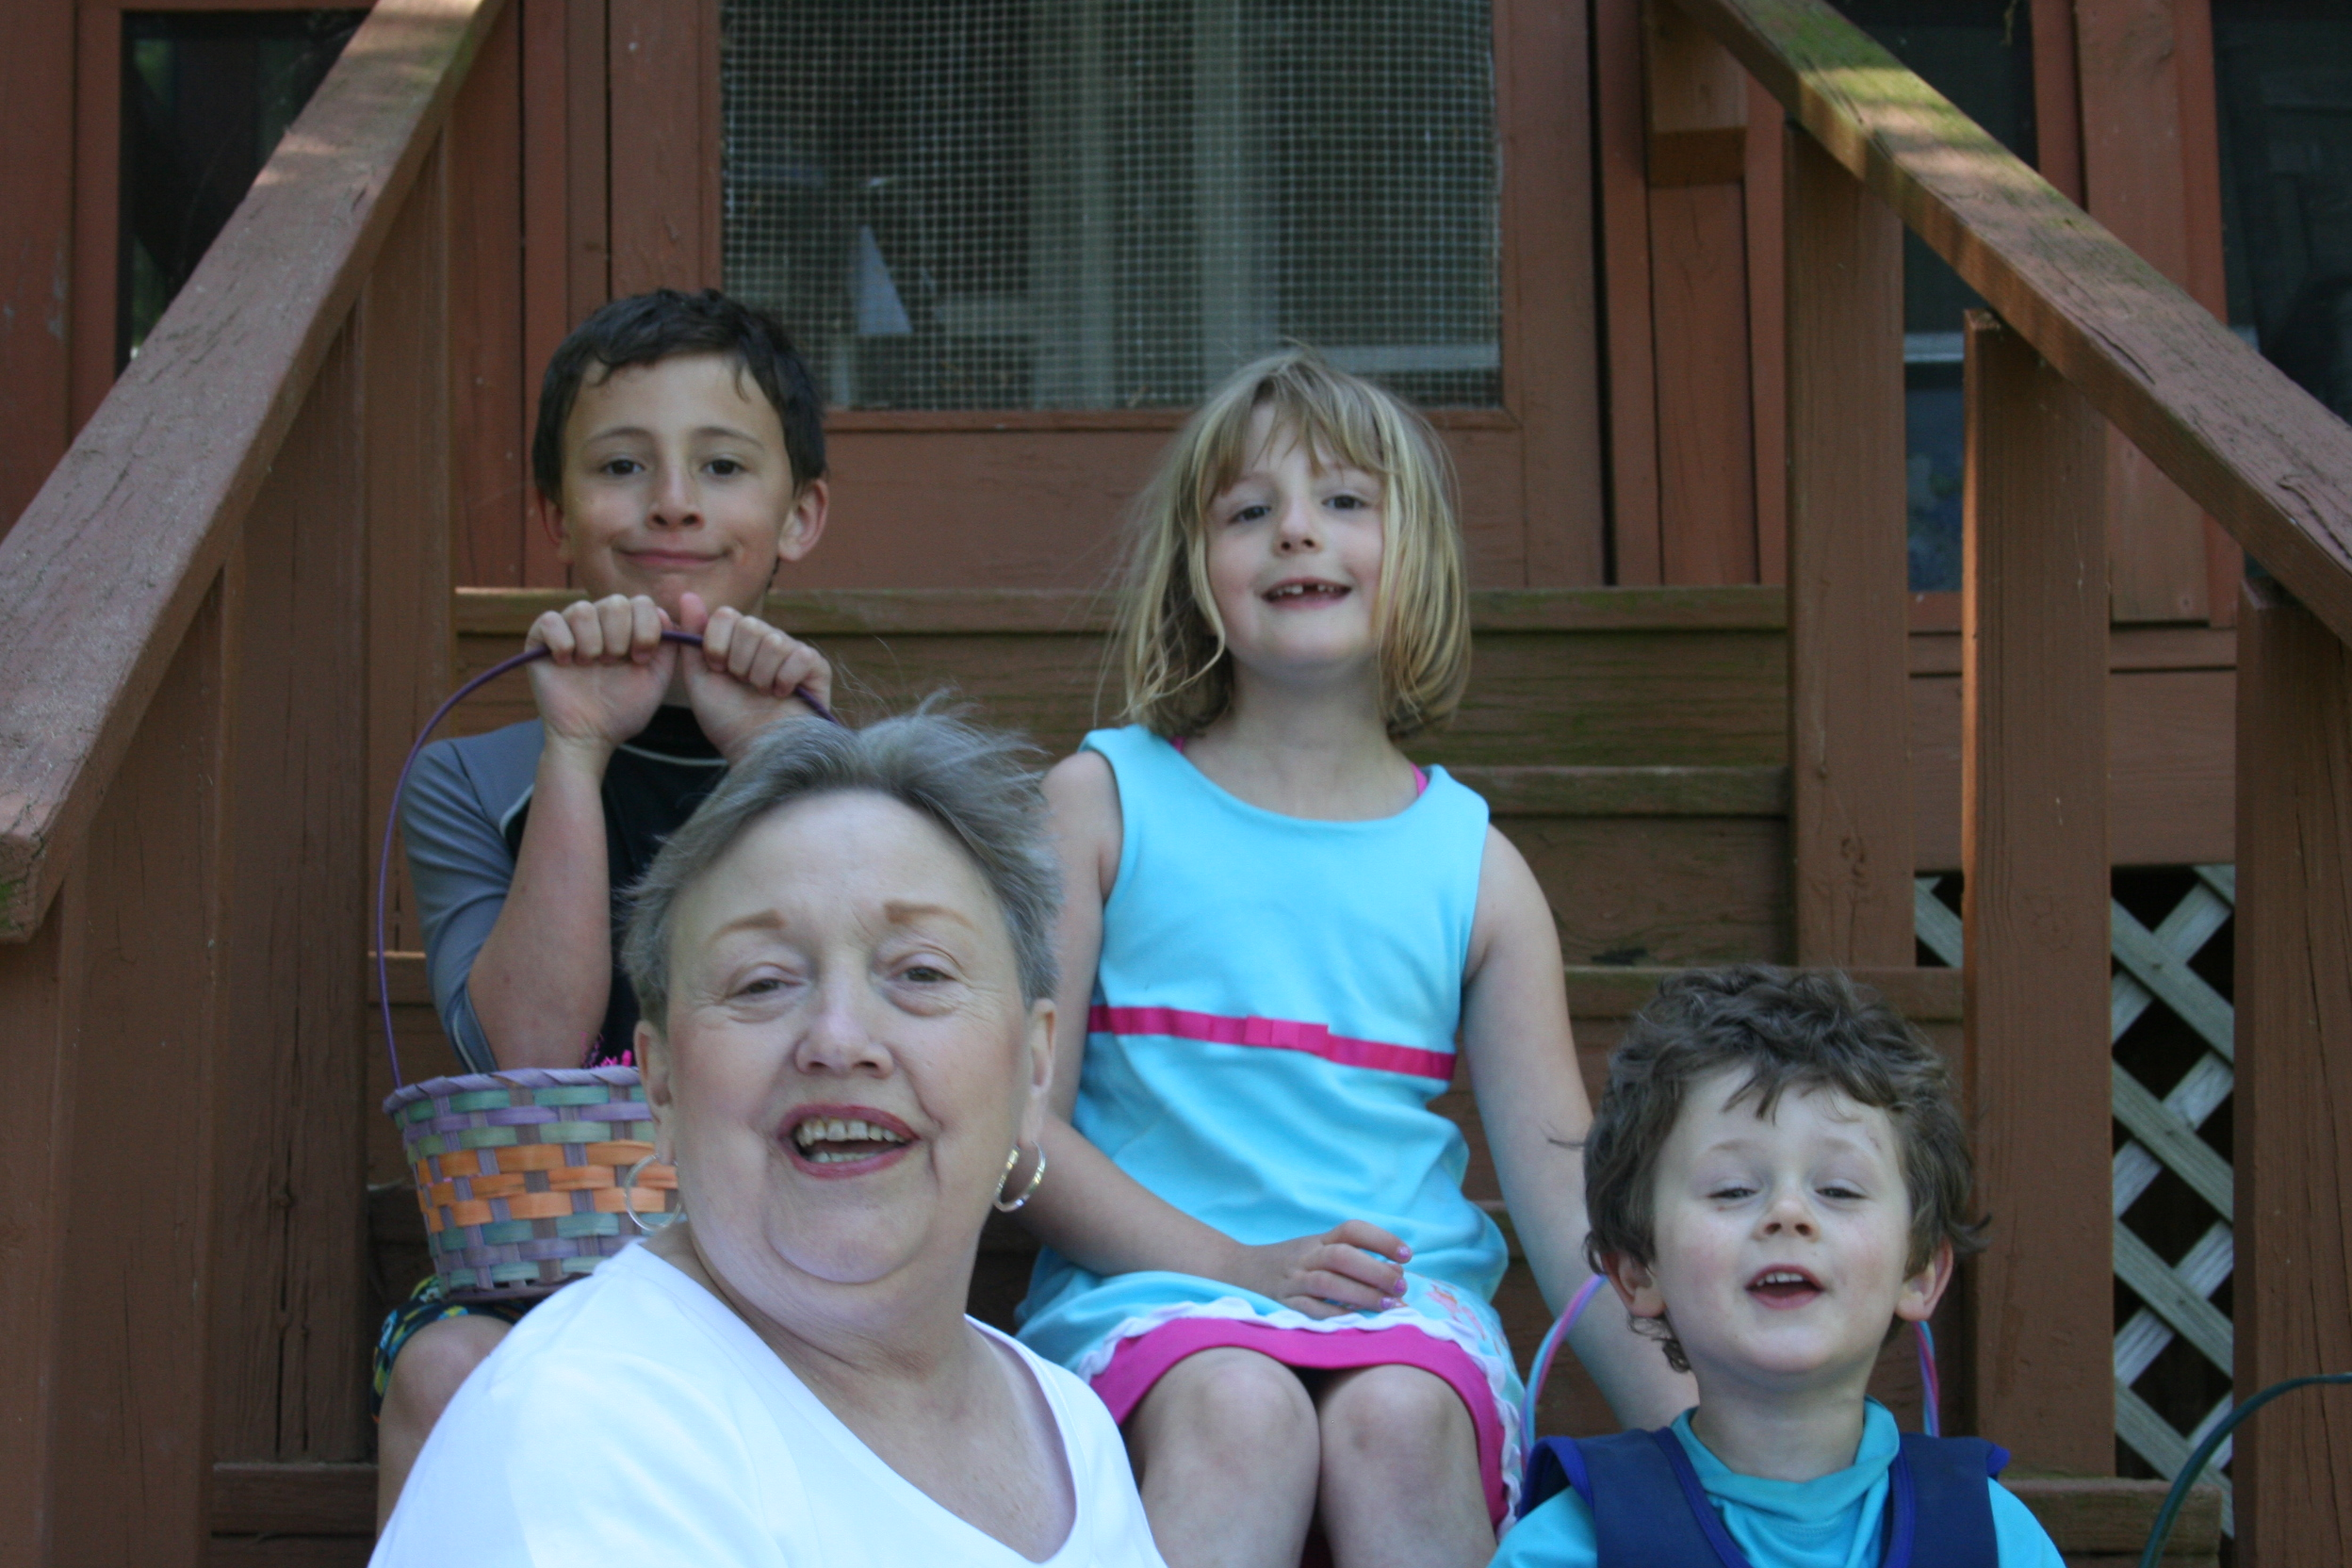 Grandma and the kids.